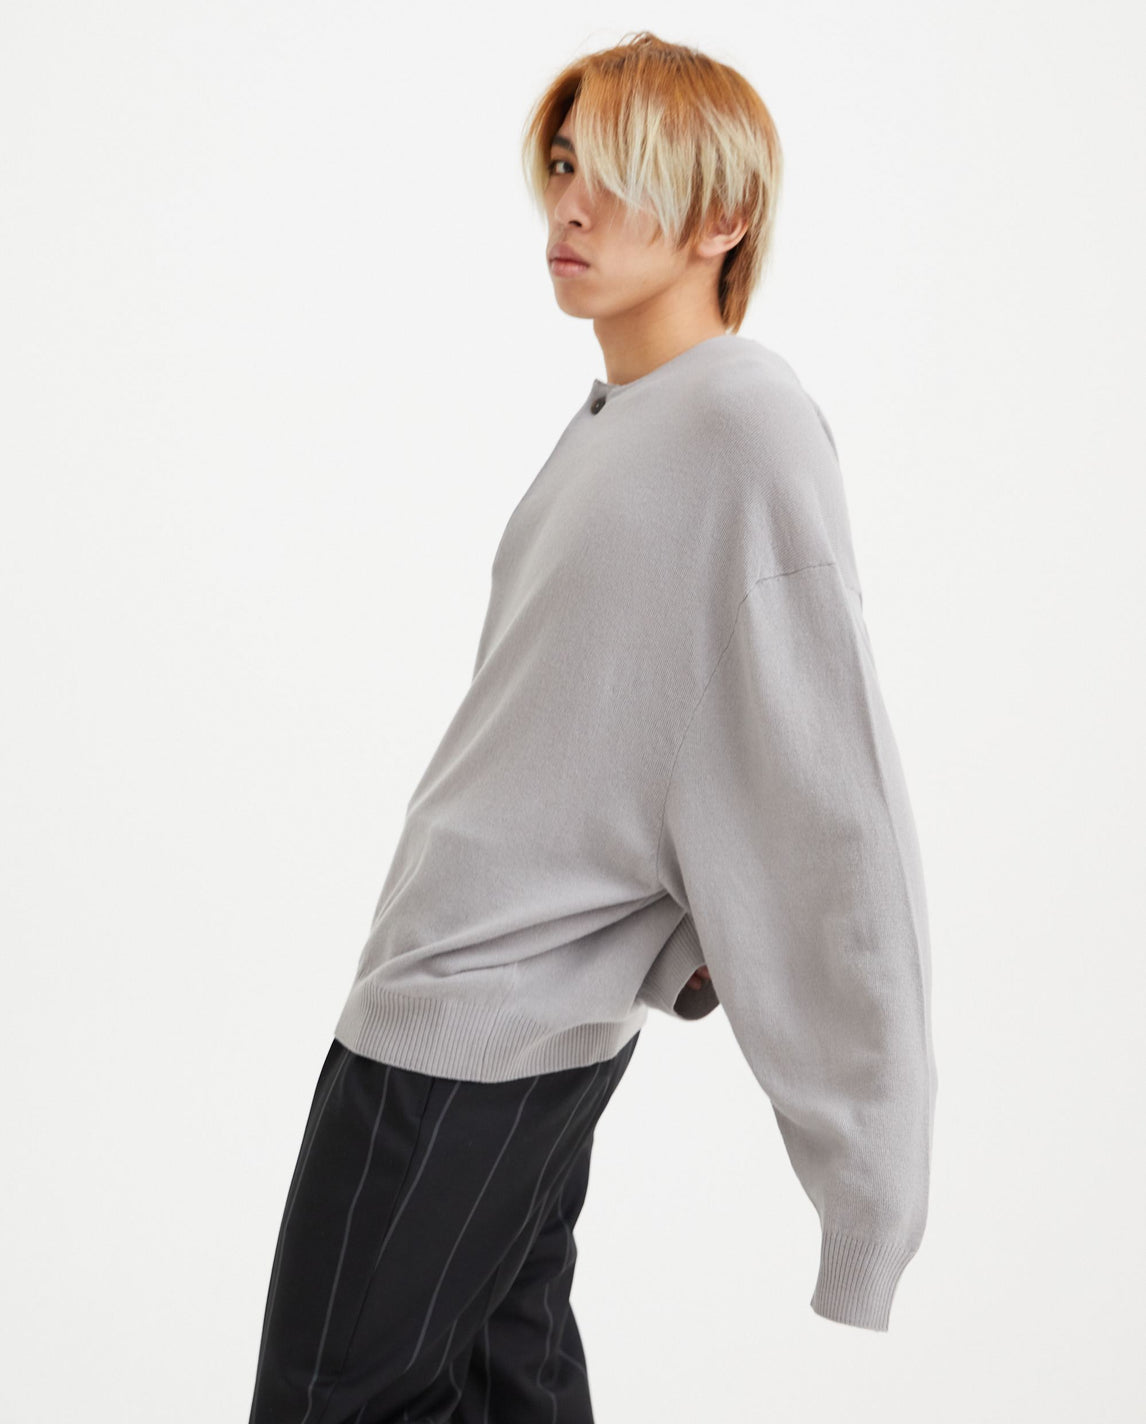 Wool Knit Sweater - Satellite MENS FEAR OF GOD X ZEGNA